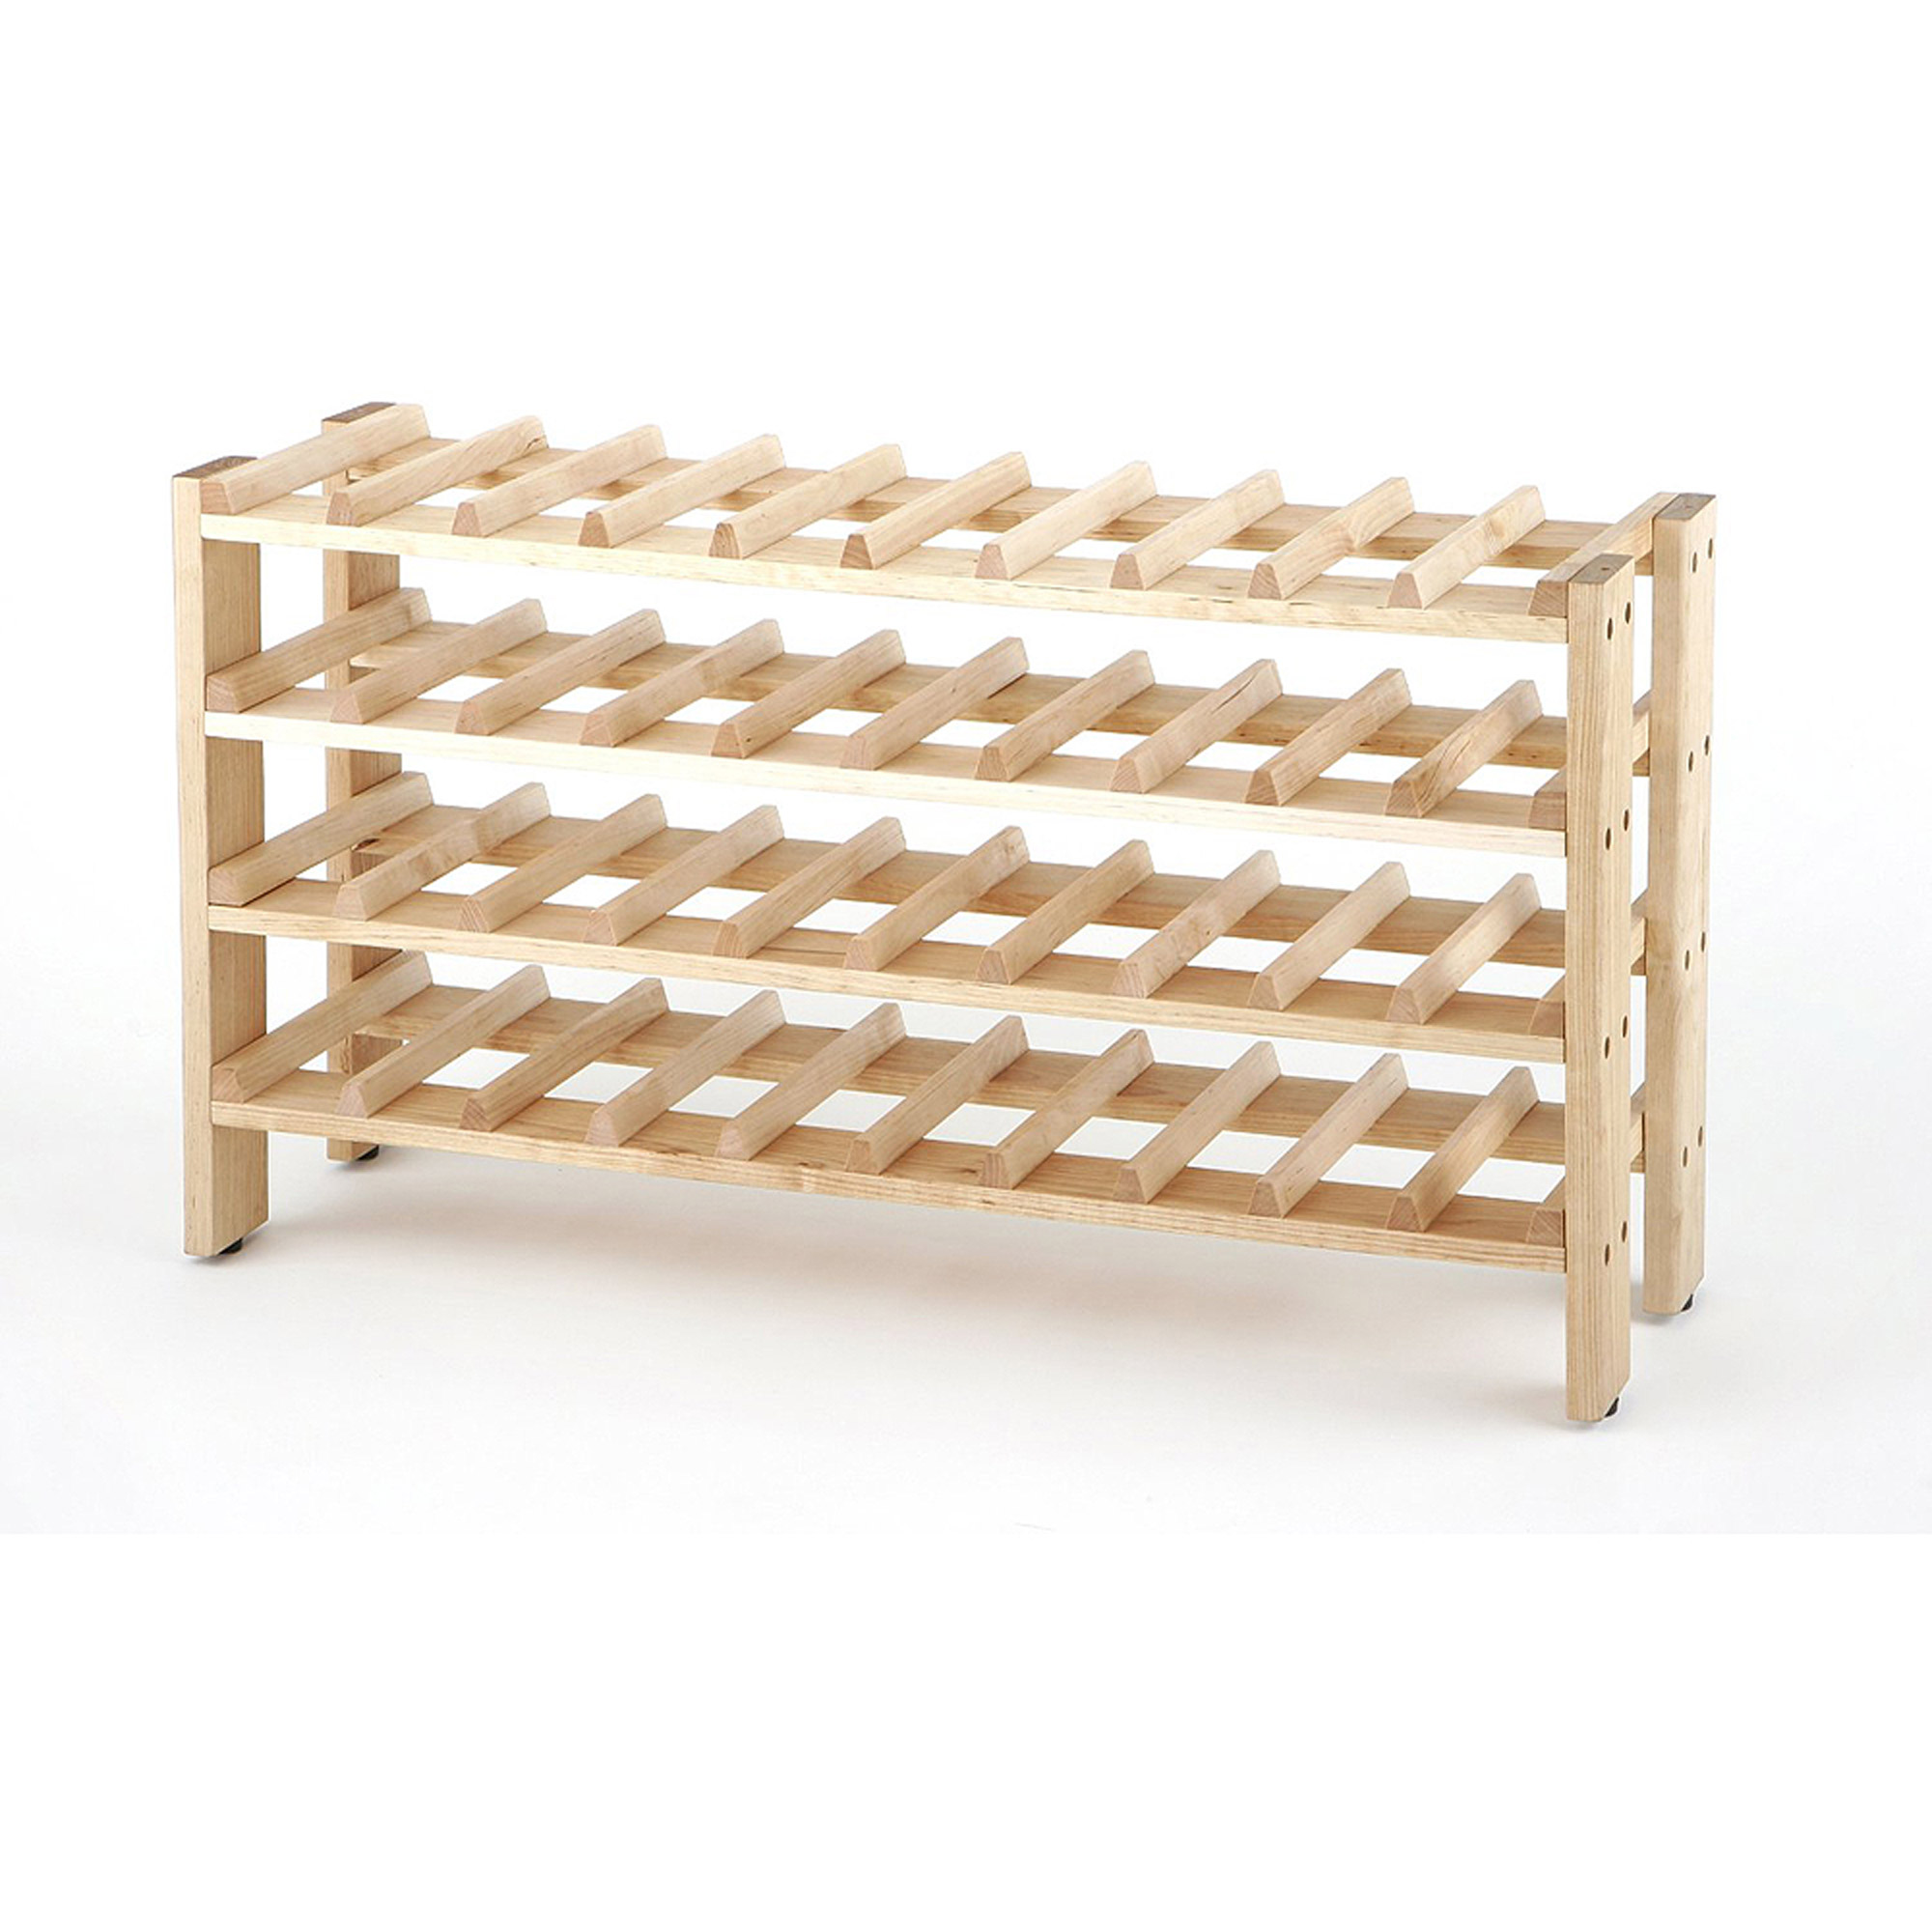 Seville Classics 40-Bottle Birchwood Wine Rack, FRN04714